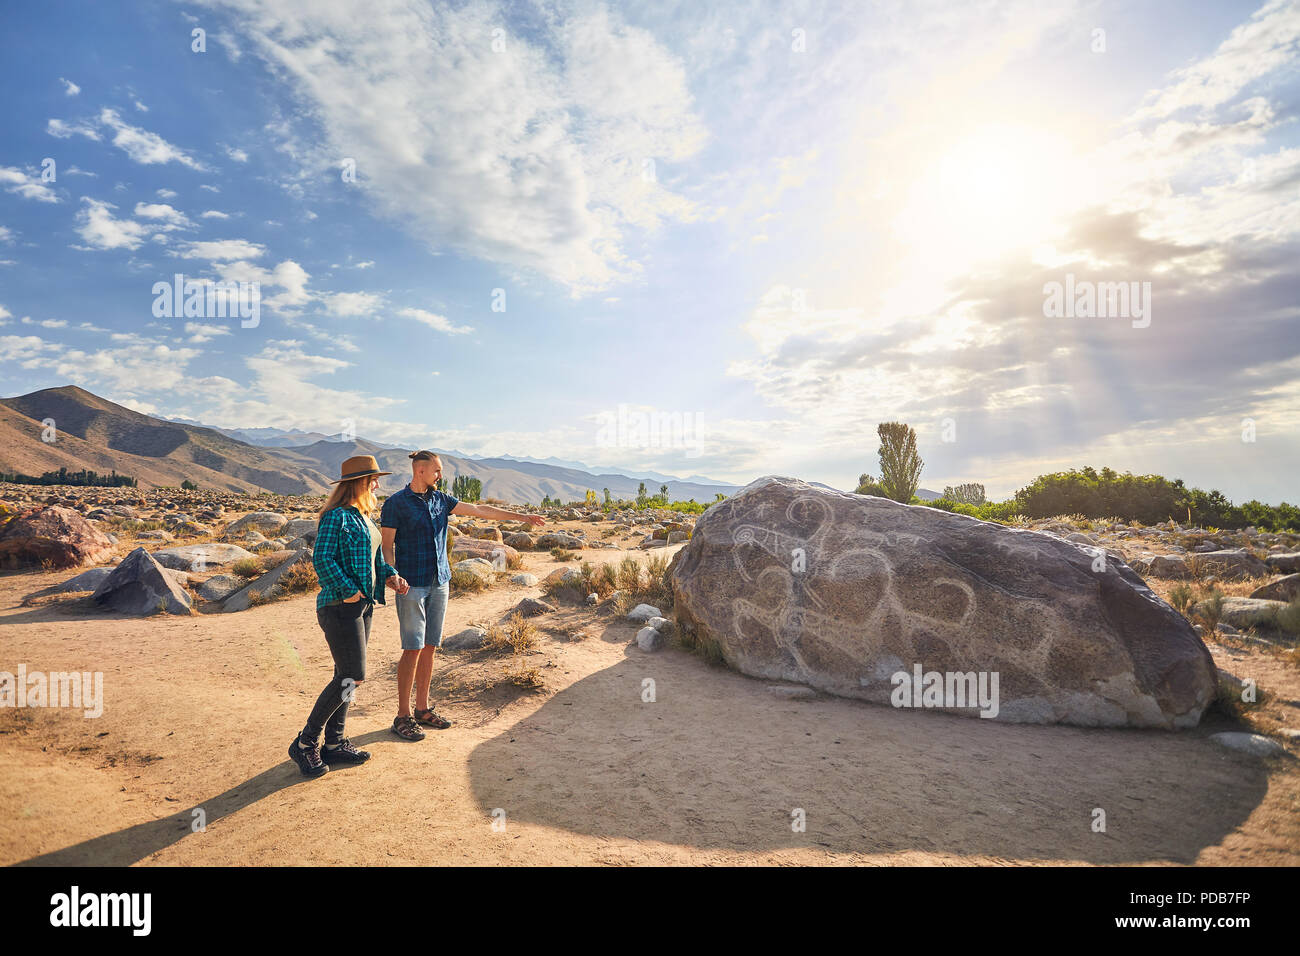 Couple in blue checkered shirt in the open air museum near stone with ancient petroglyph of goats at Kyrgyzstan. Culture Heritage Museum. - Stock Image